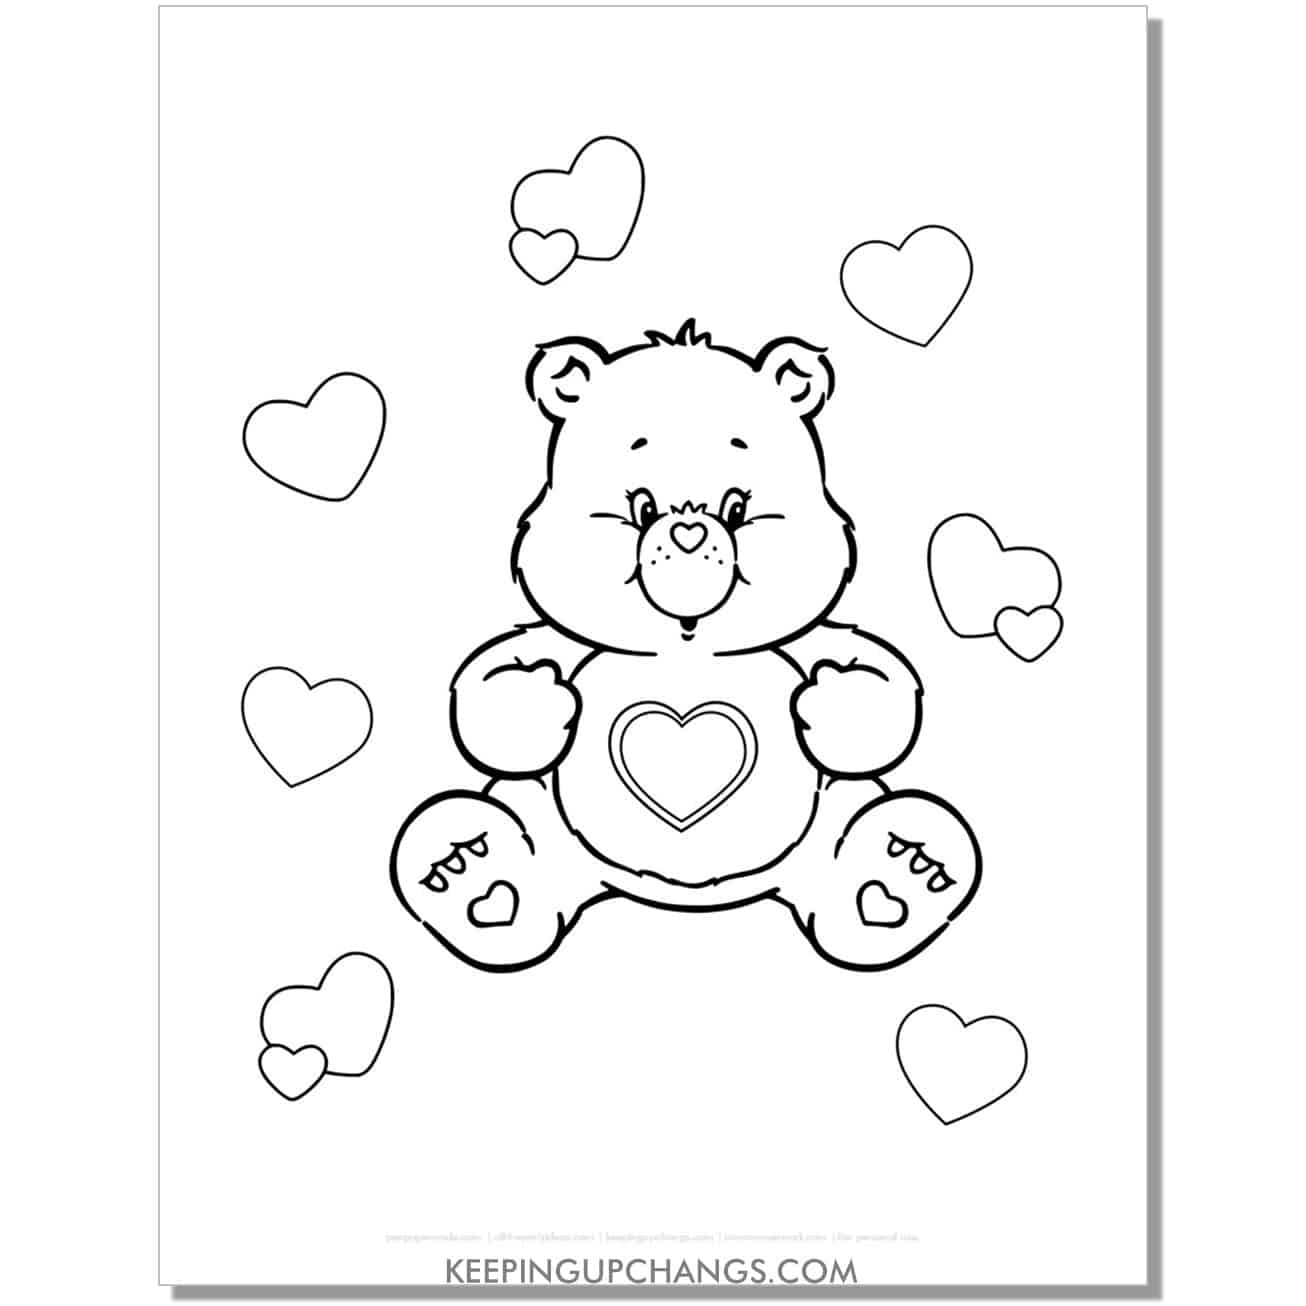 tenderheart wonderheart surrounded by hearts care bear coloring page.